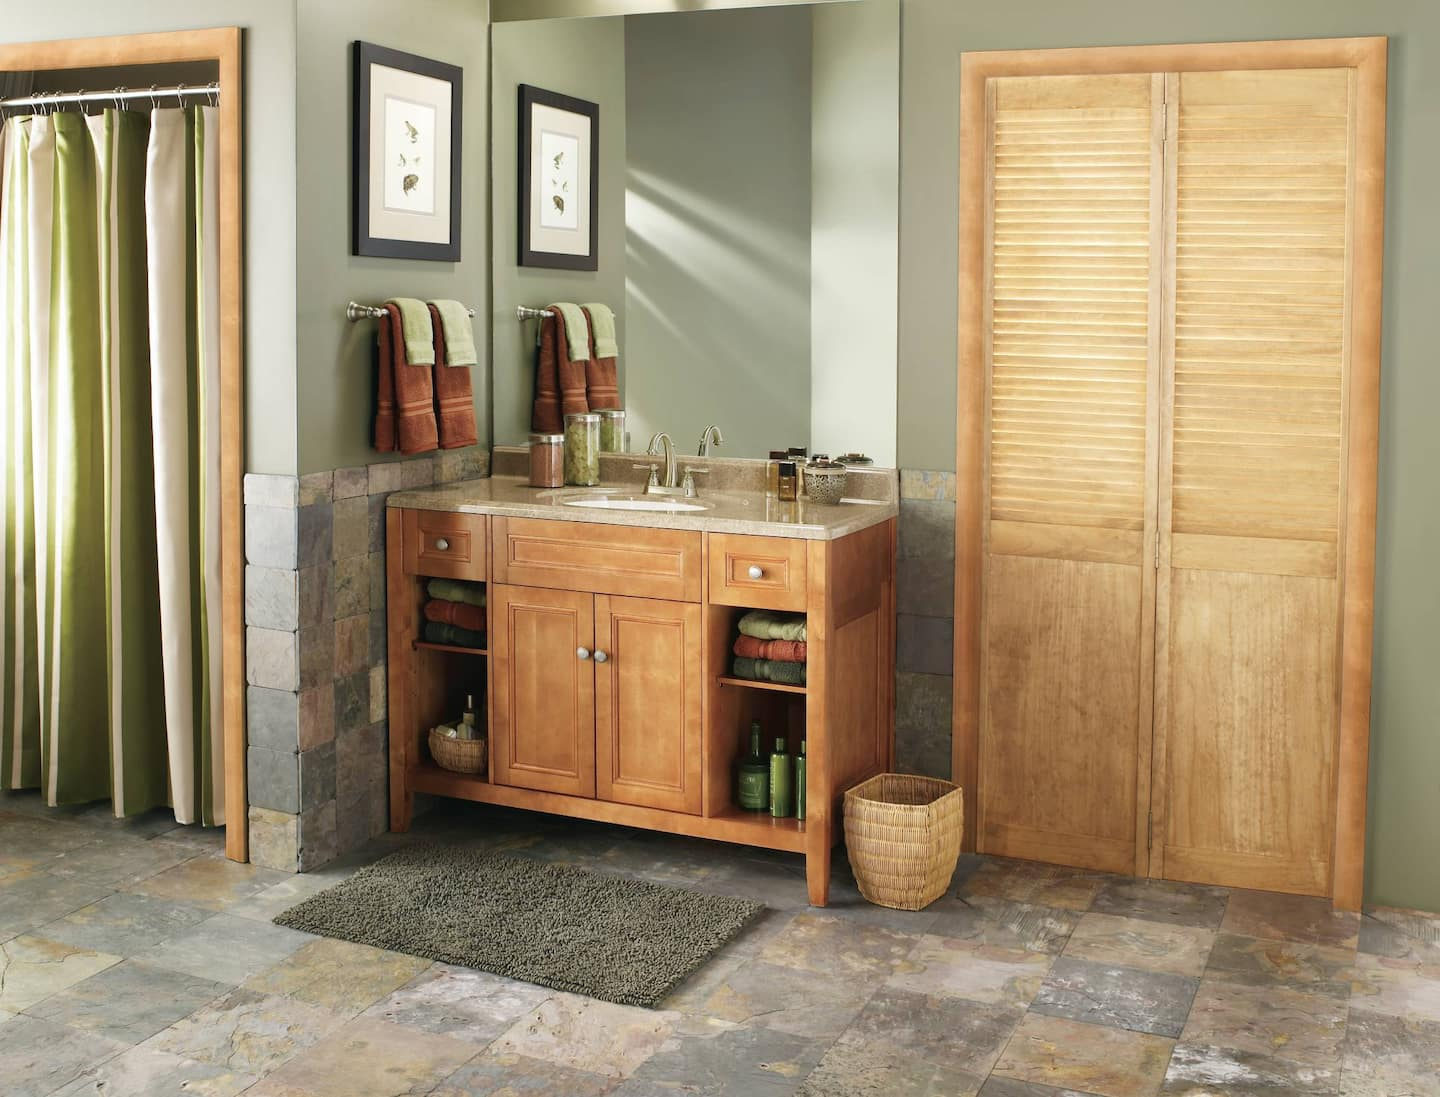 Bathroom Remodeling Joliet Il top 10 best chicago il remodeling contractors | angie's list